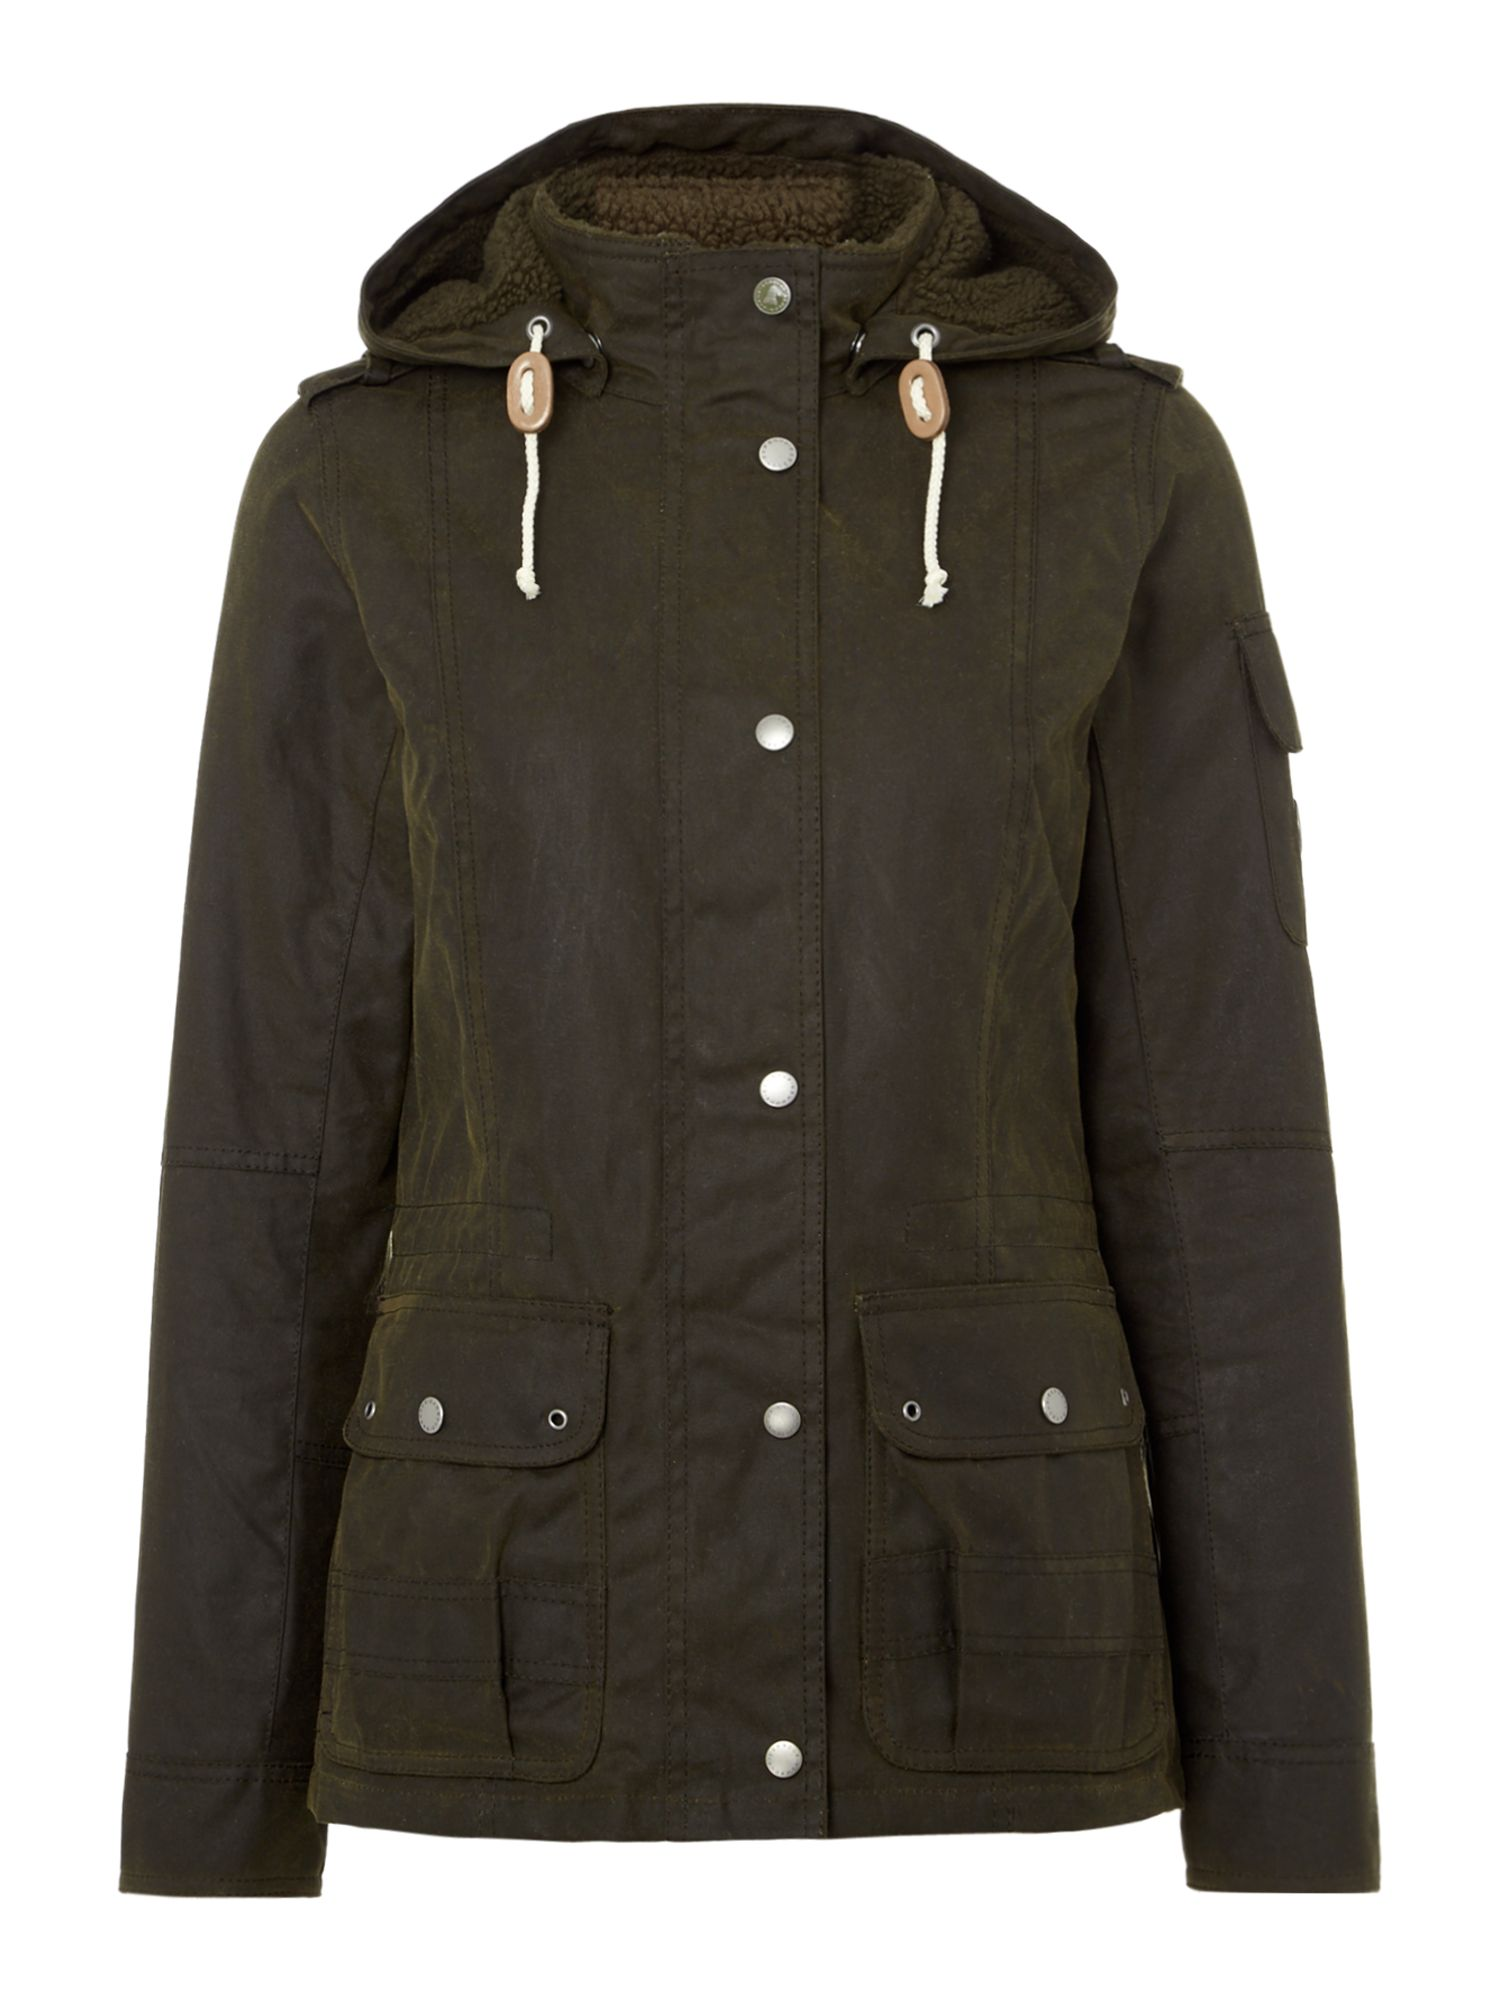 Barbour Ashley Wax Jacket With Tartan Lining, Olive